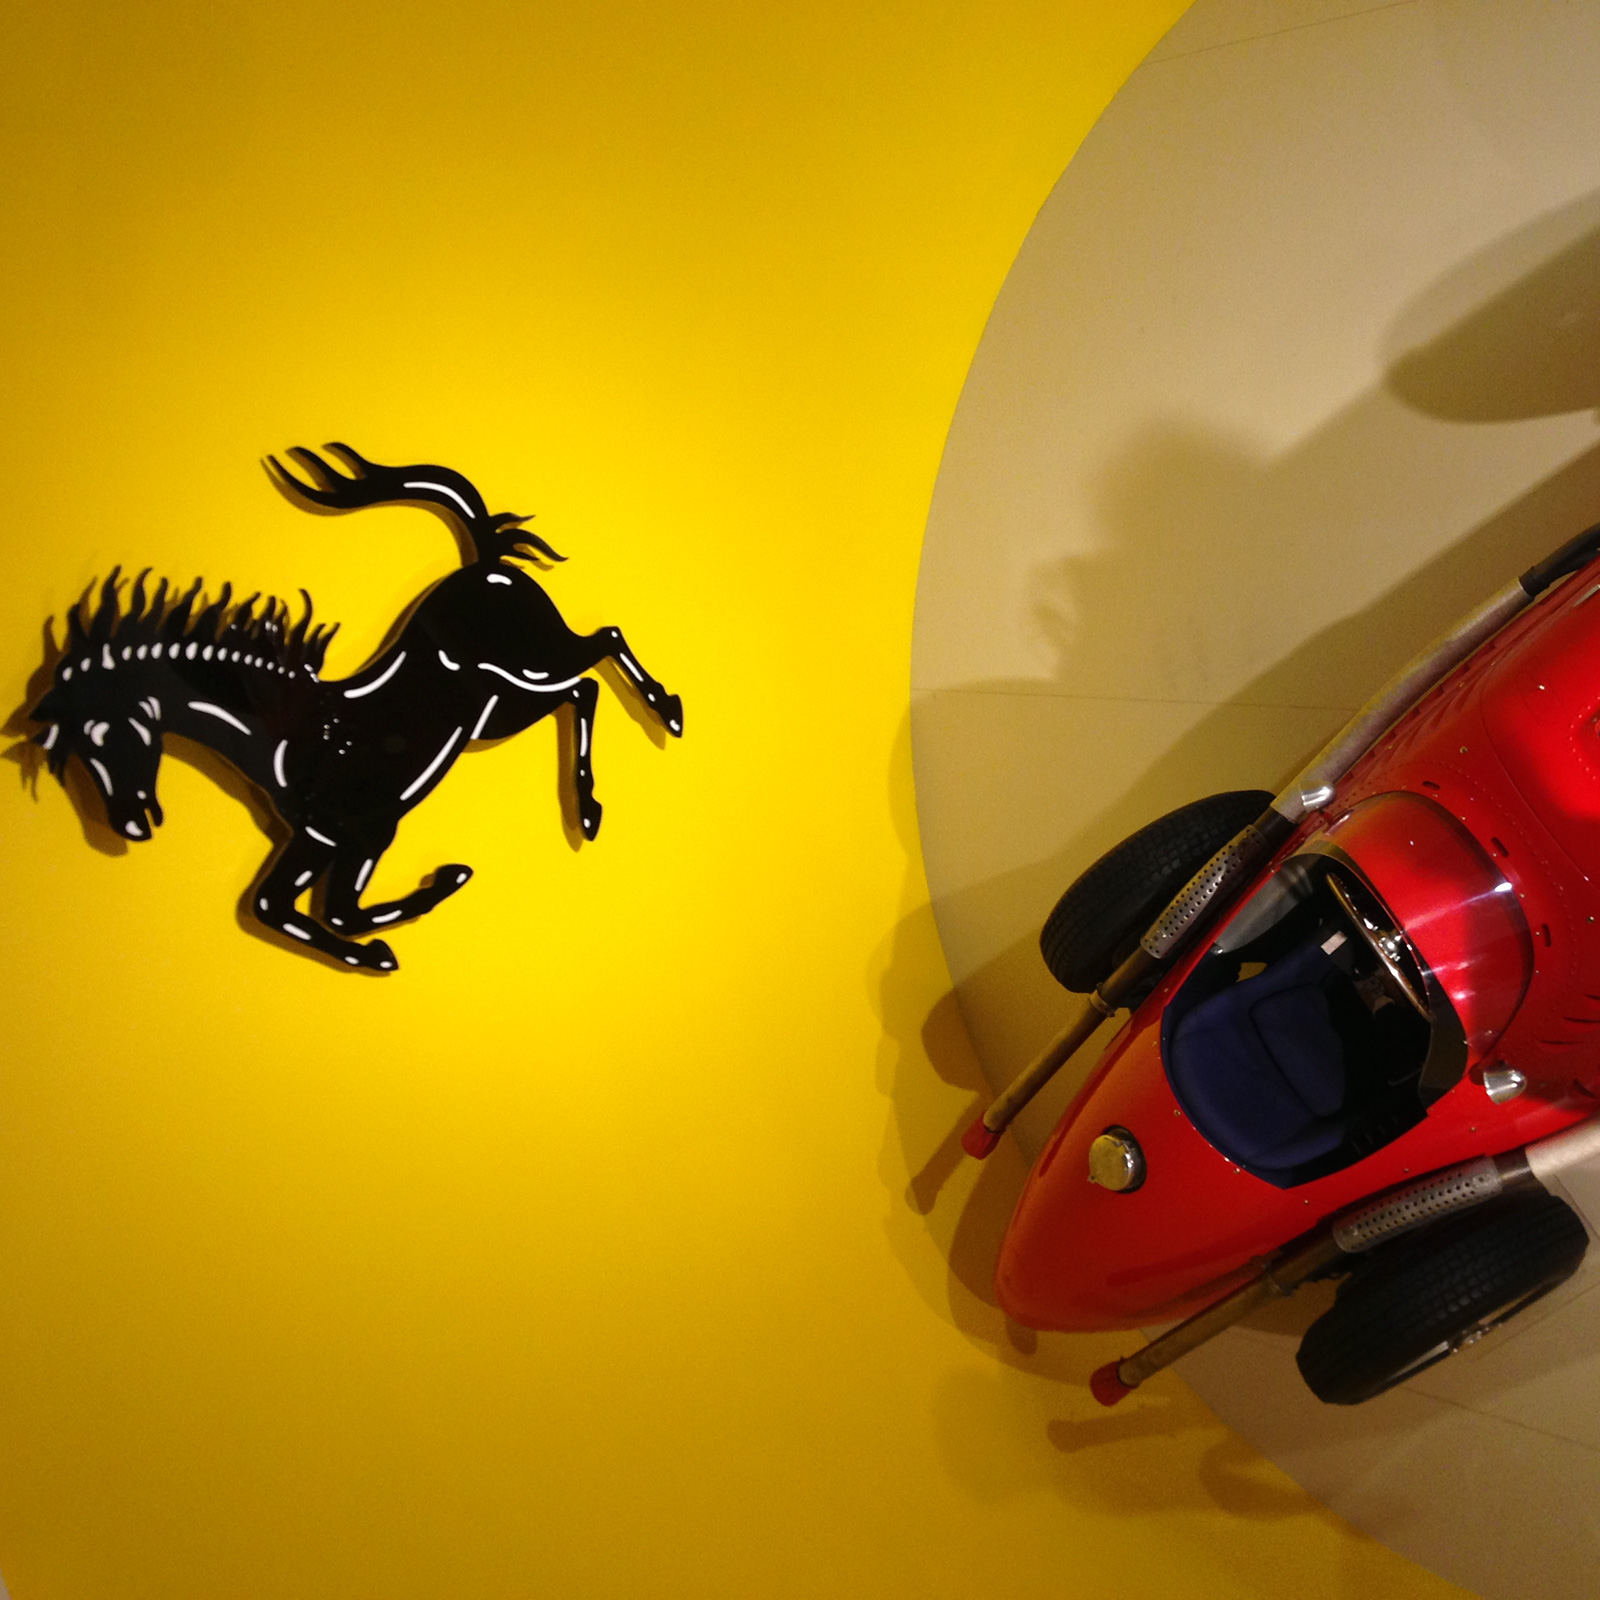 Visiting The Concorso D Eleganza And The Ferrari Factory